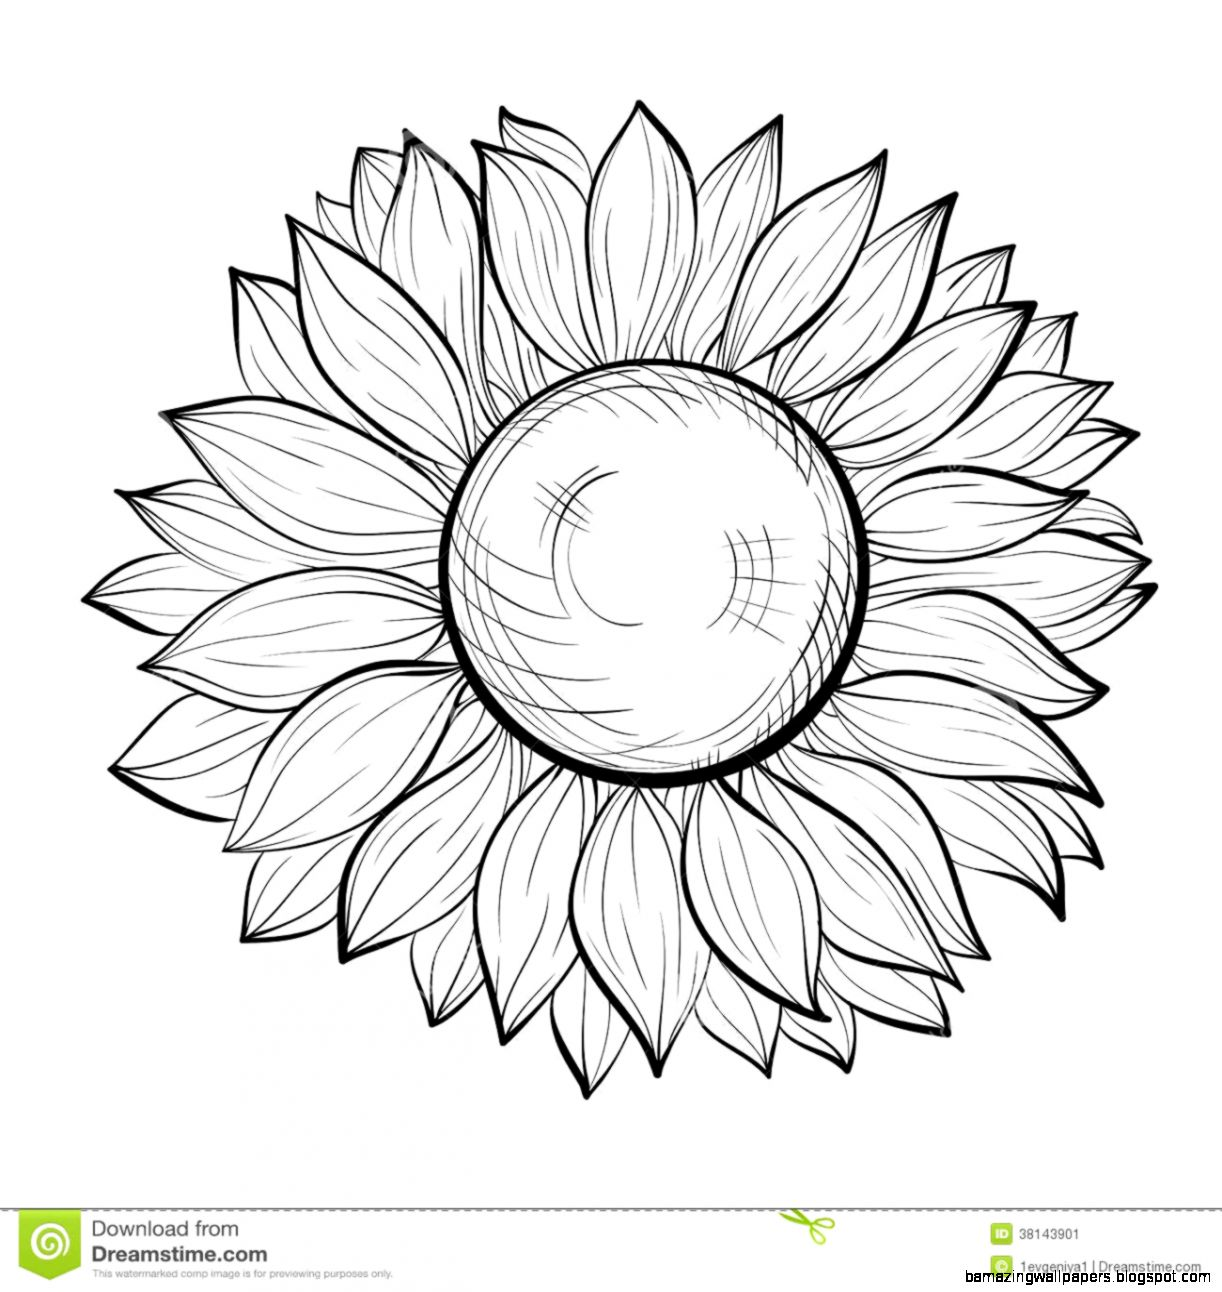 sunflower outline picture simple sunflower drawing free download on clipartmag outline picture sunflower